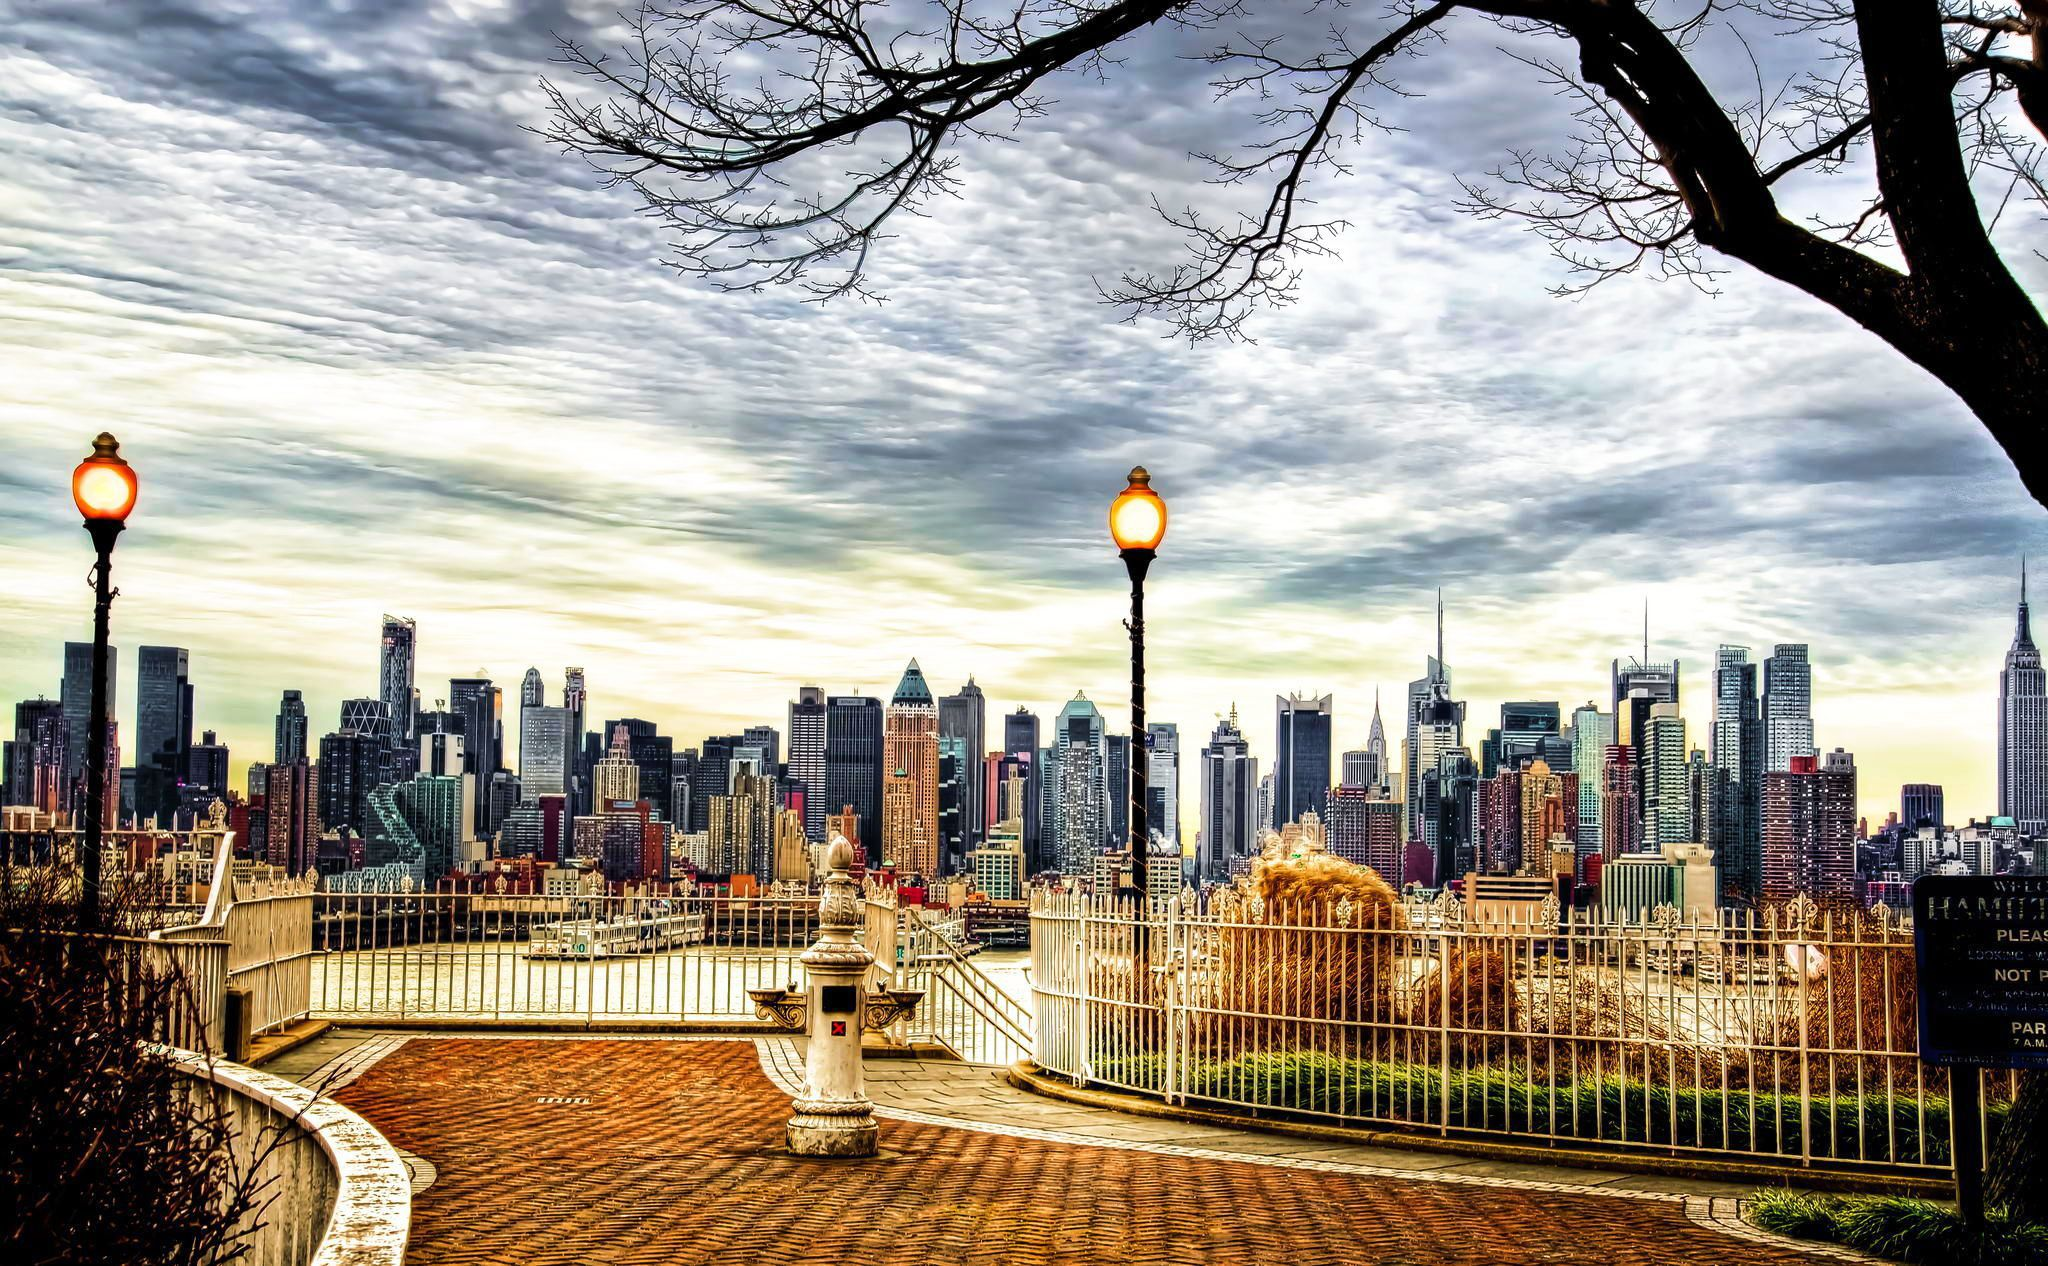 New york city wallpapers top free new york city backgrounds wallpaperaccess - New york city wallpaper hd pictures ...